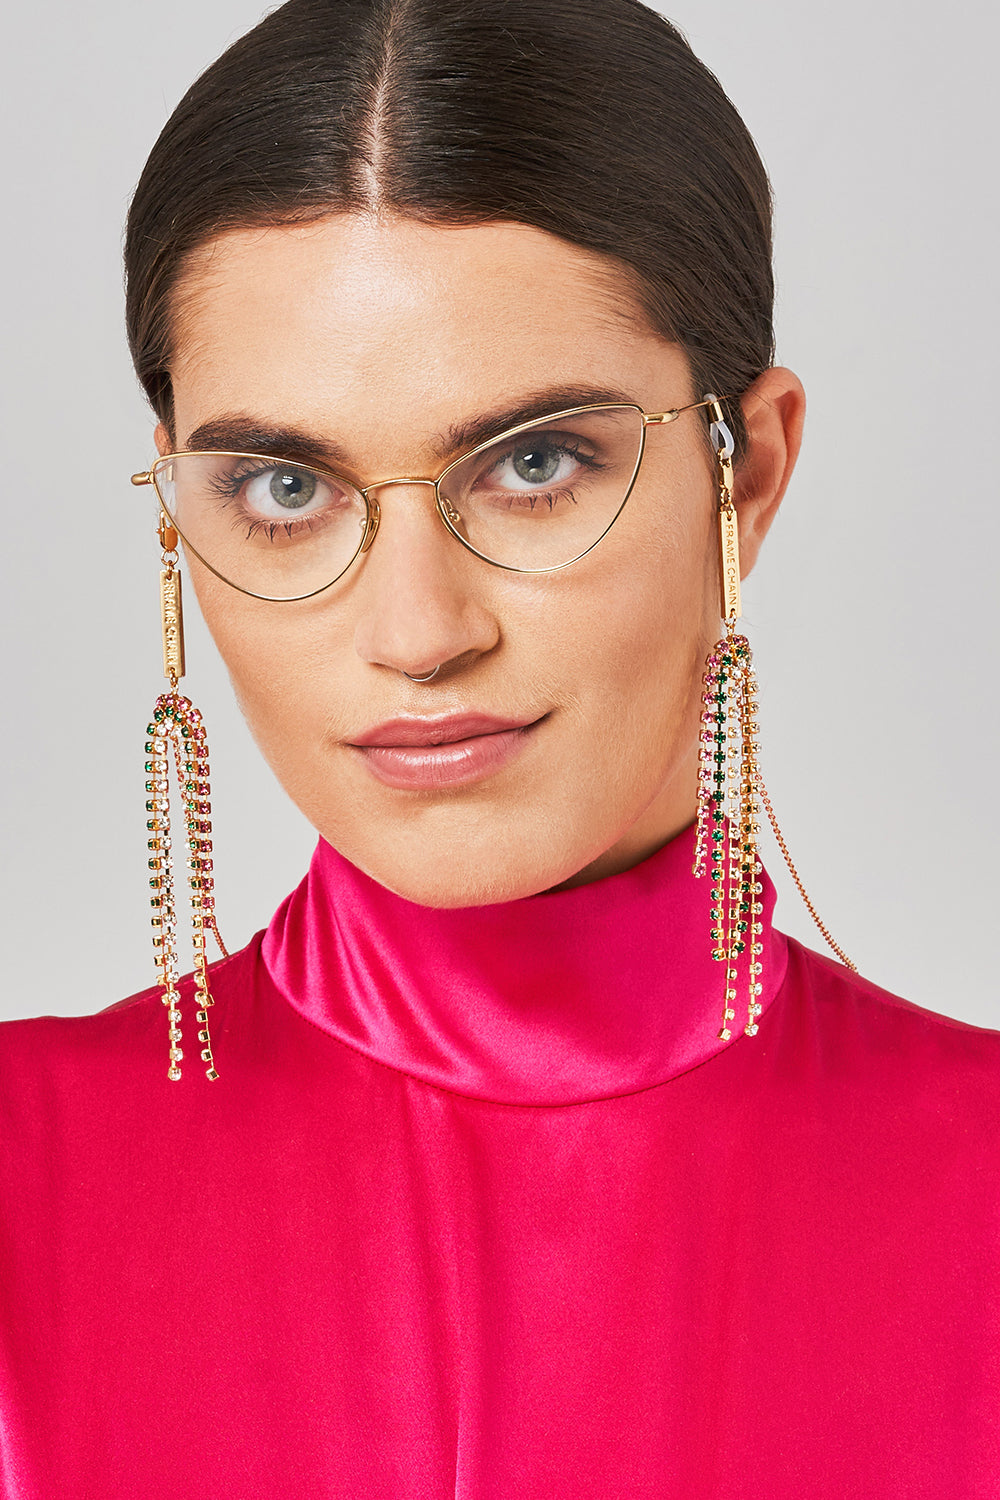 FRAME CHAIN - DOLLY WHITE, PINK & GREEN CRYSTAL in YELLOW GOLD - Glasses Chain